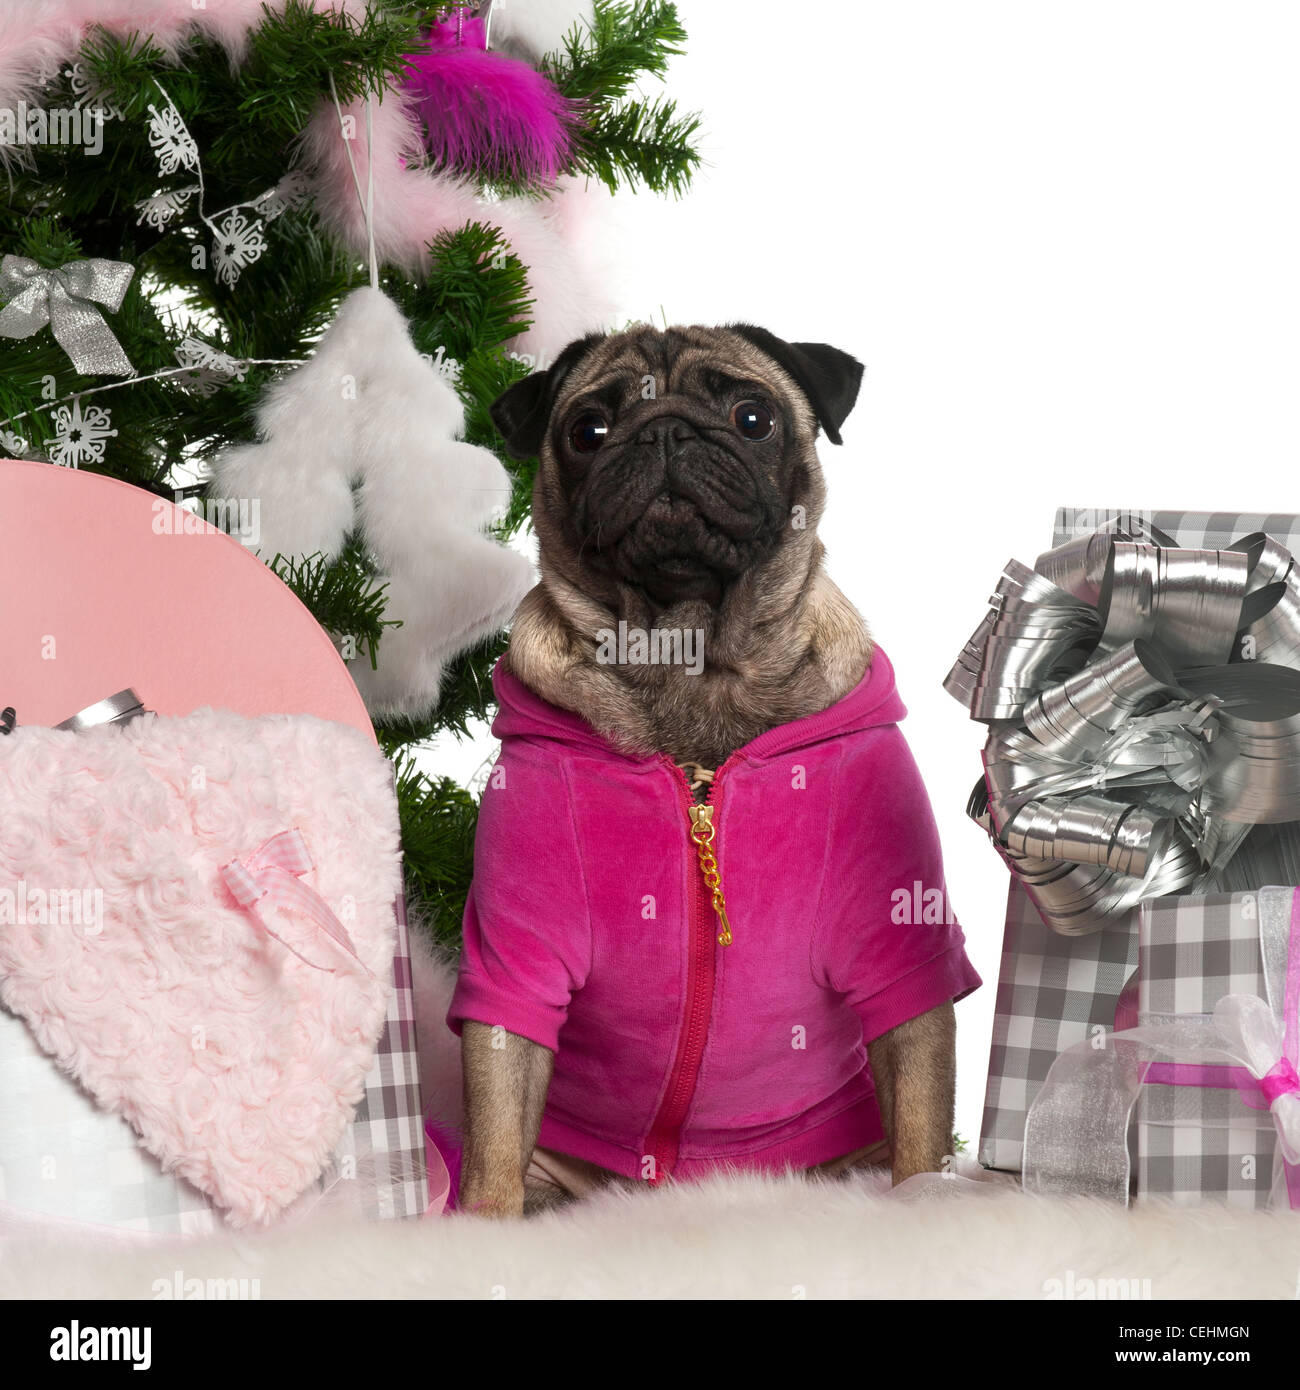 Pug, 3 years old, sitting with Christmas tree and gifts in front of white background Stock Photo